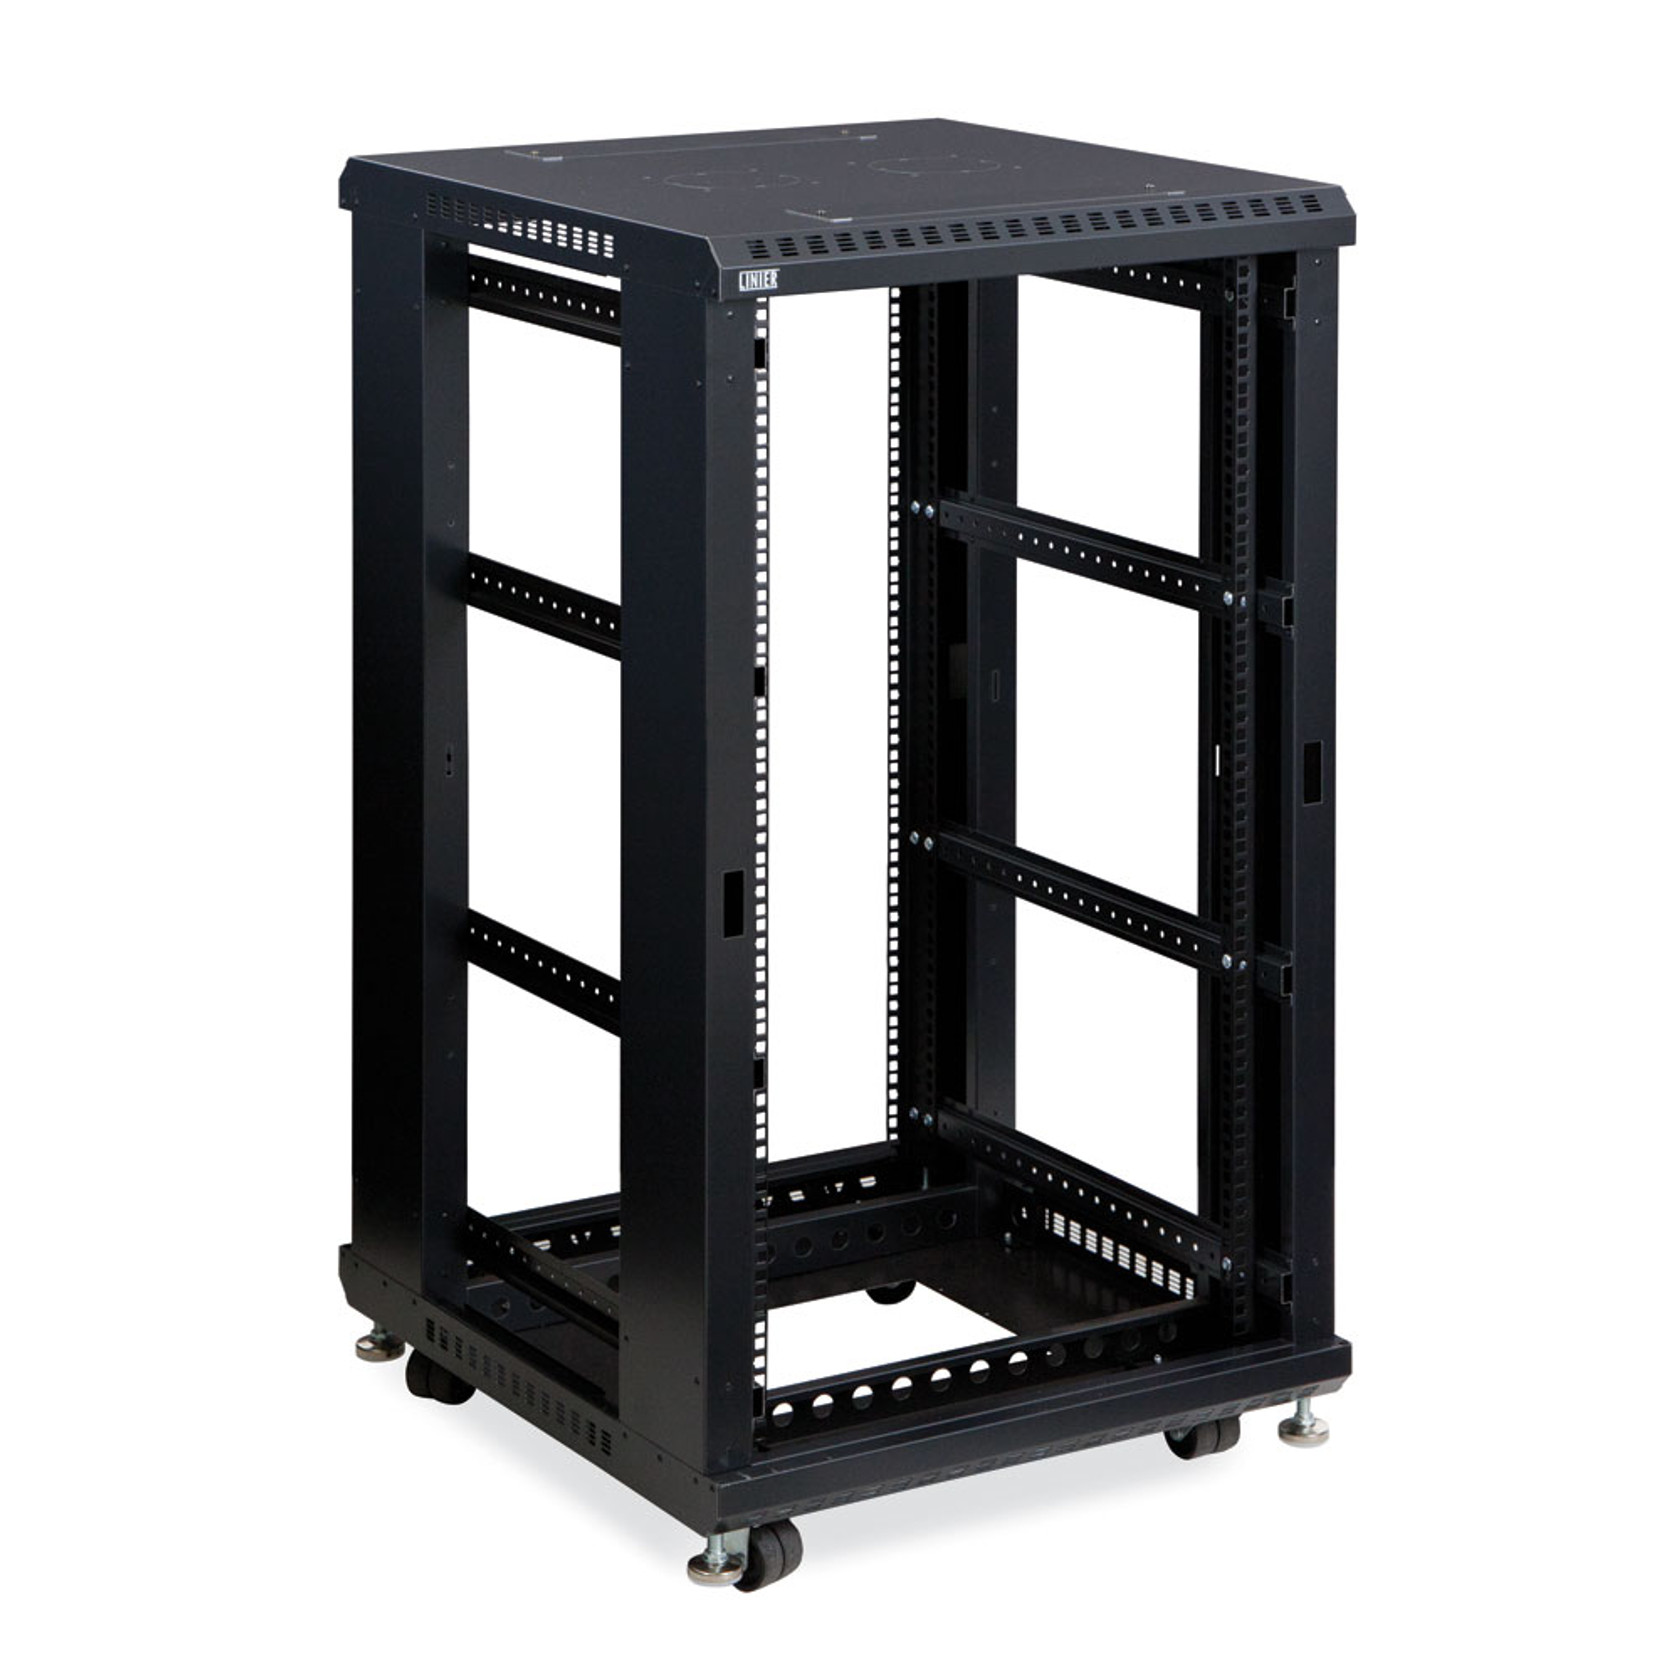 in server cabinets data rack center with photo matrix network a stock racks